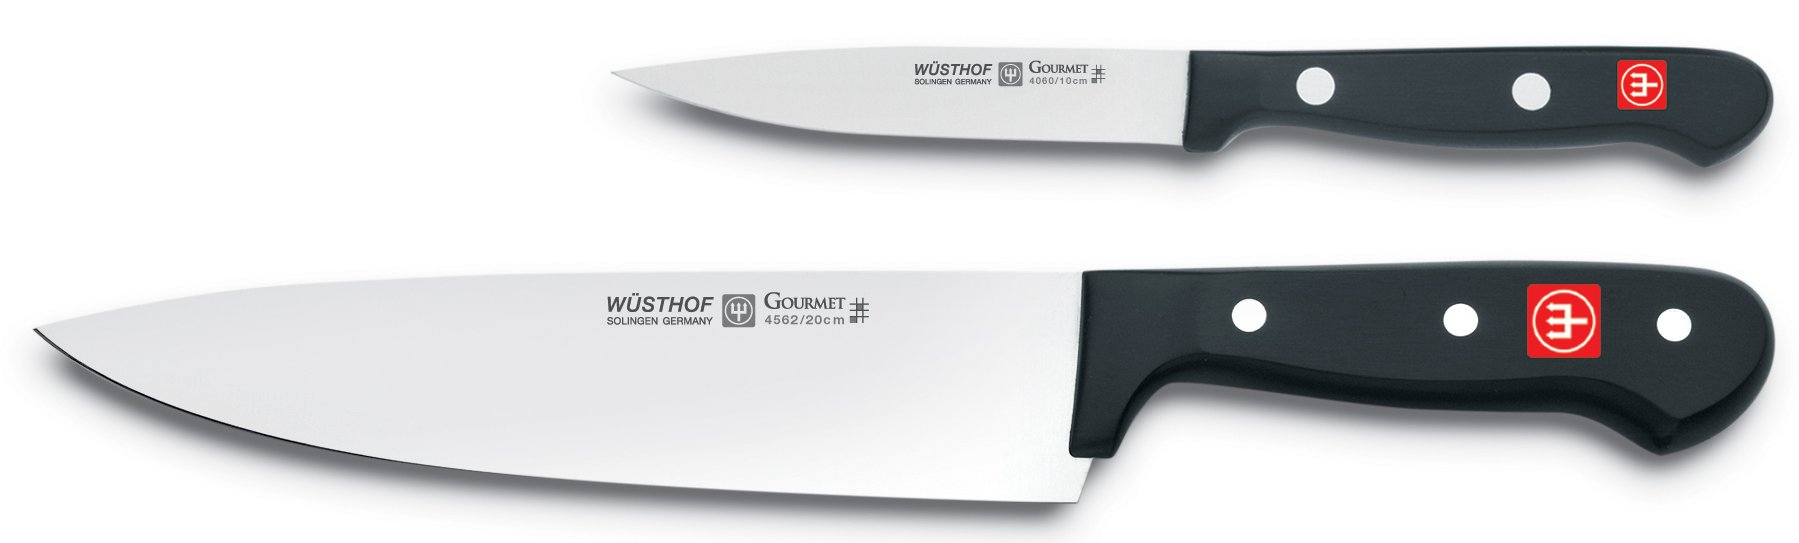 WÜSTHOF Gourmet Two Piece Cook's Knife Set | 2-Piece German Knife Set with 8'' Chef's Knife & 4'' Utility Knife | Precise Laser Cut High Carbon Stainless Steel Kitchen Cook's Knife Set - Model 9654